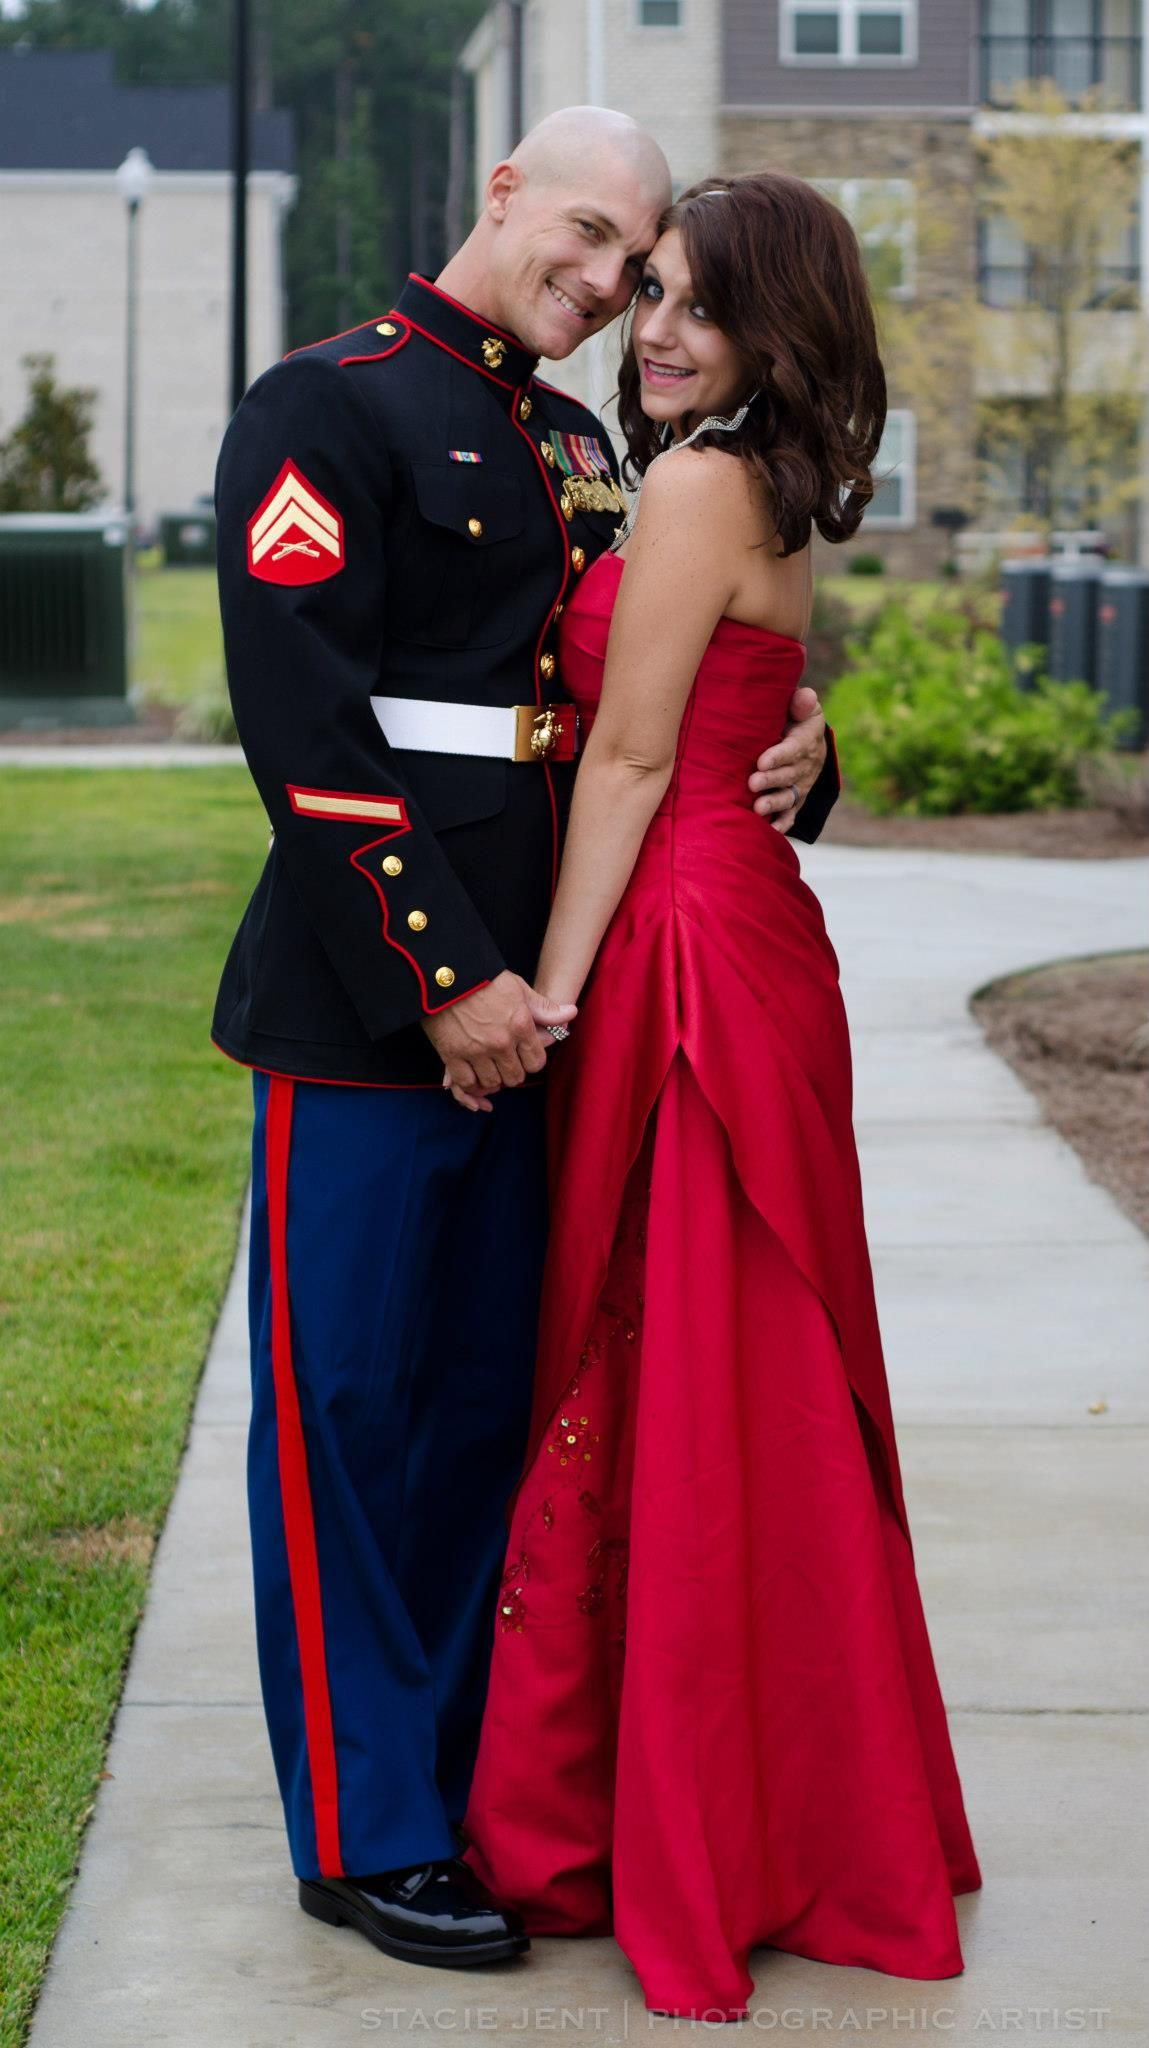 I love the way the red dress looks with the dress blues | Marine ...